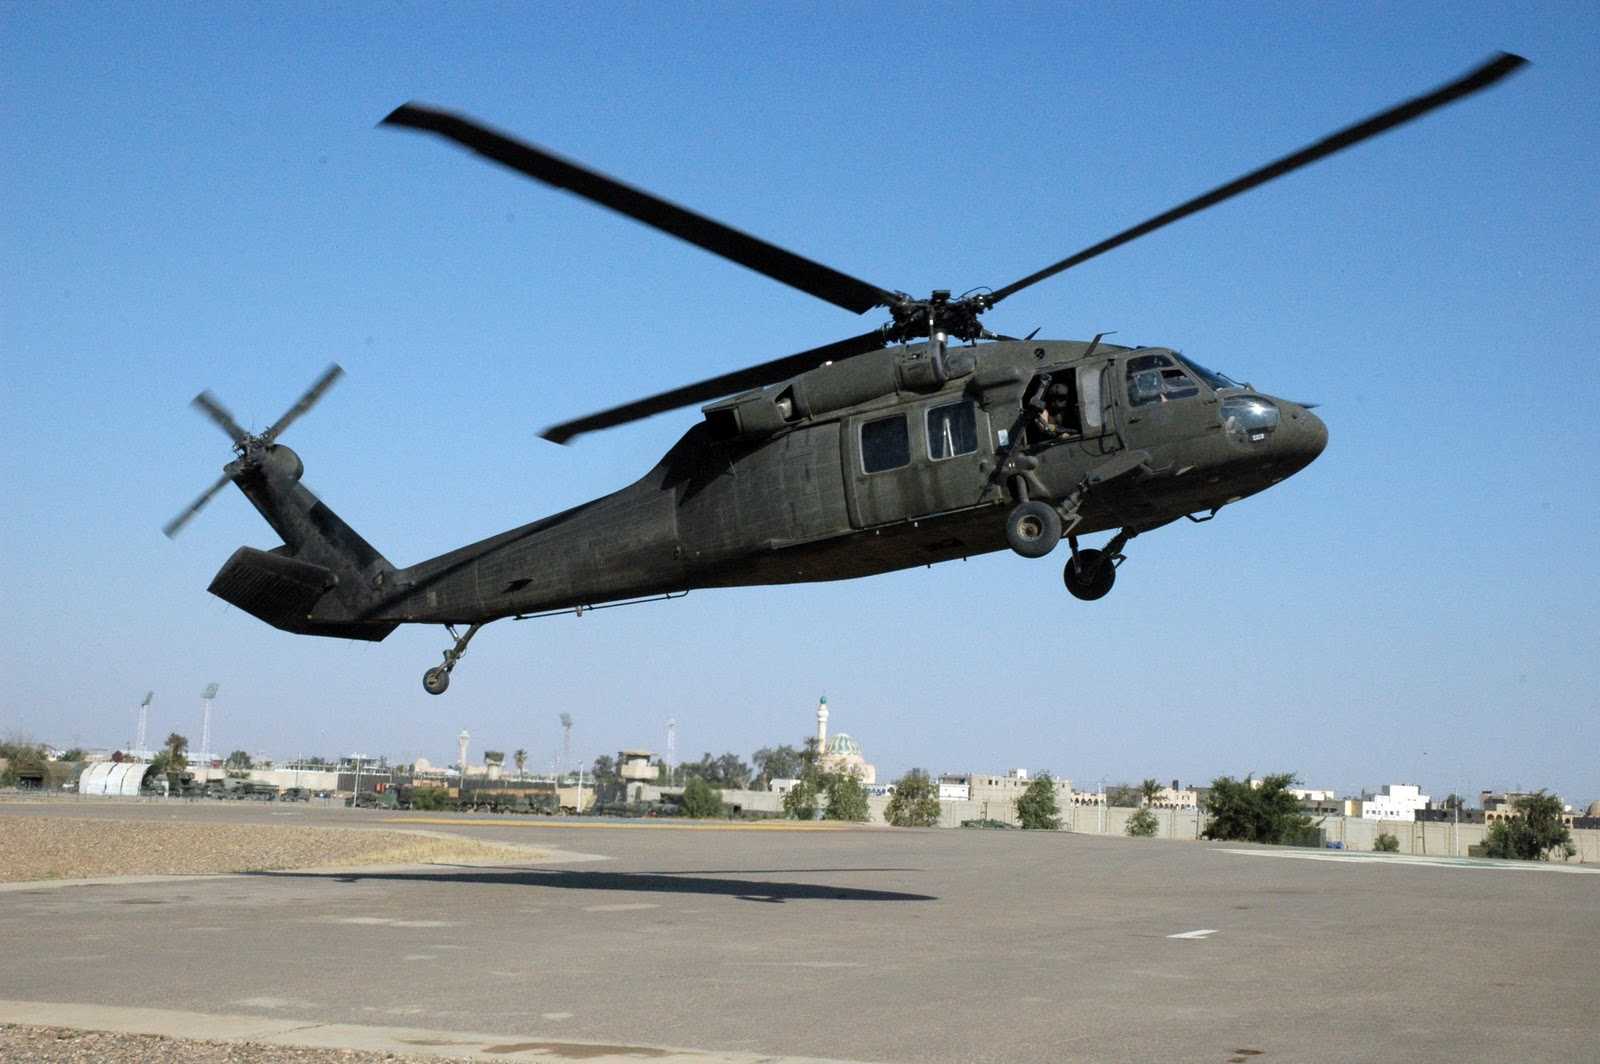 UH60 'BlackHawk' Medium Lift 'Utility' 